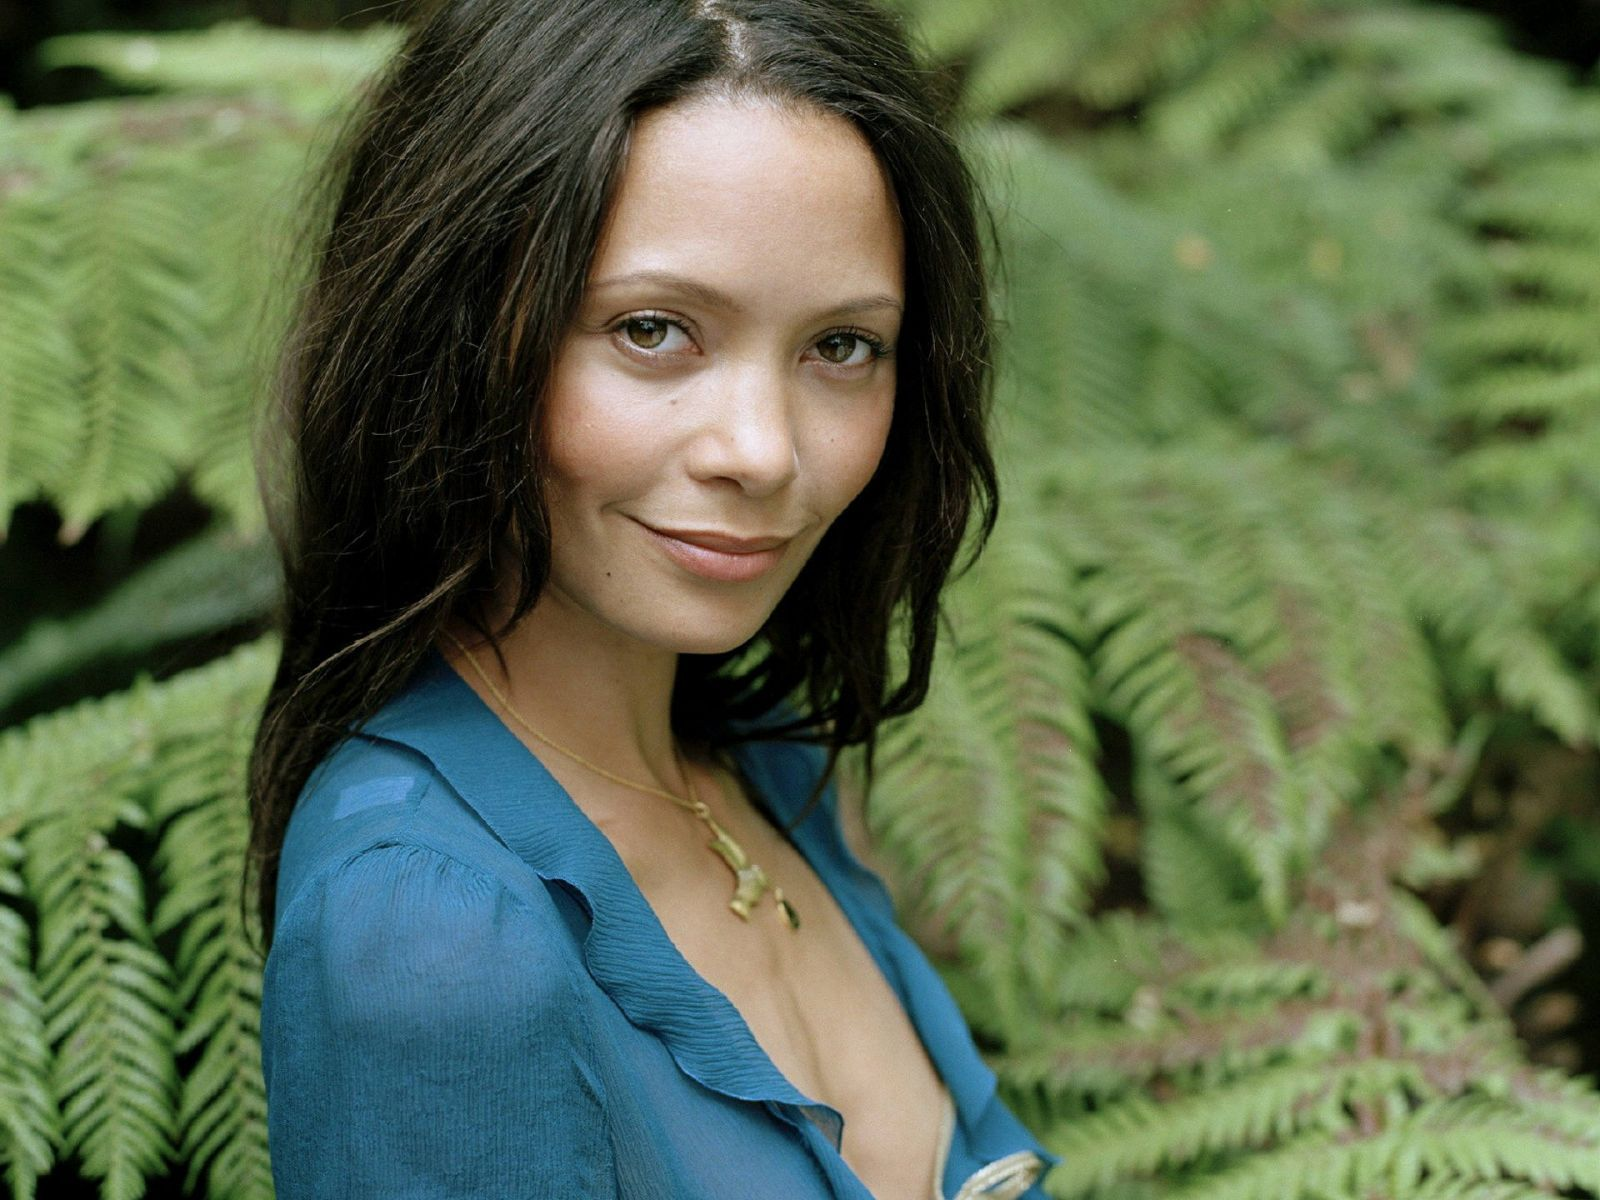 thandie newton vs zoe saldana